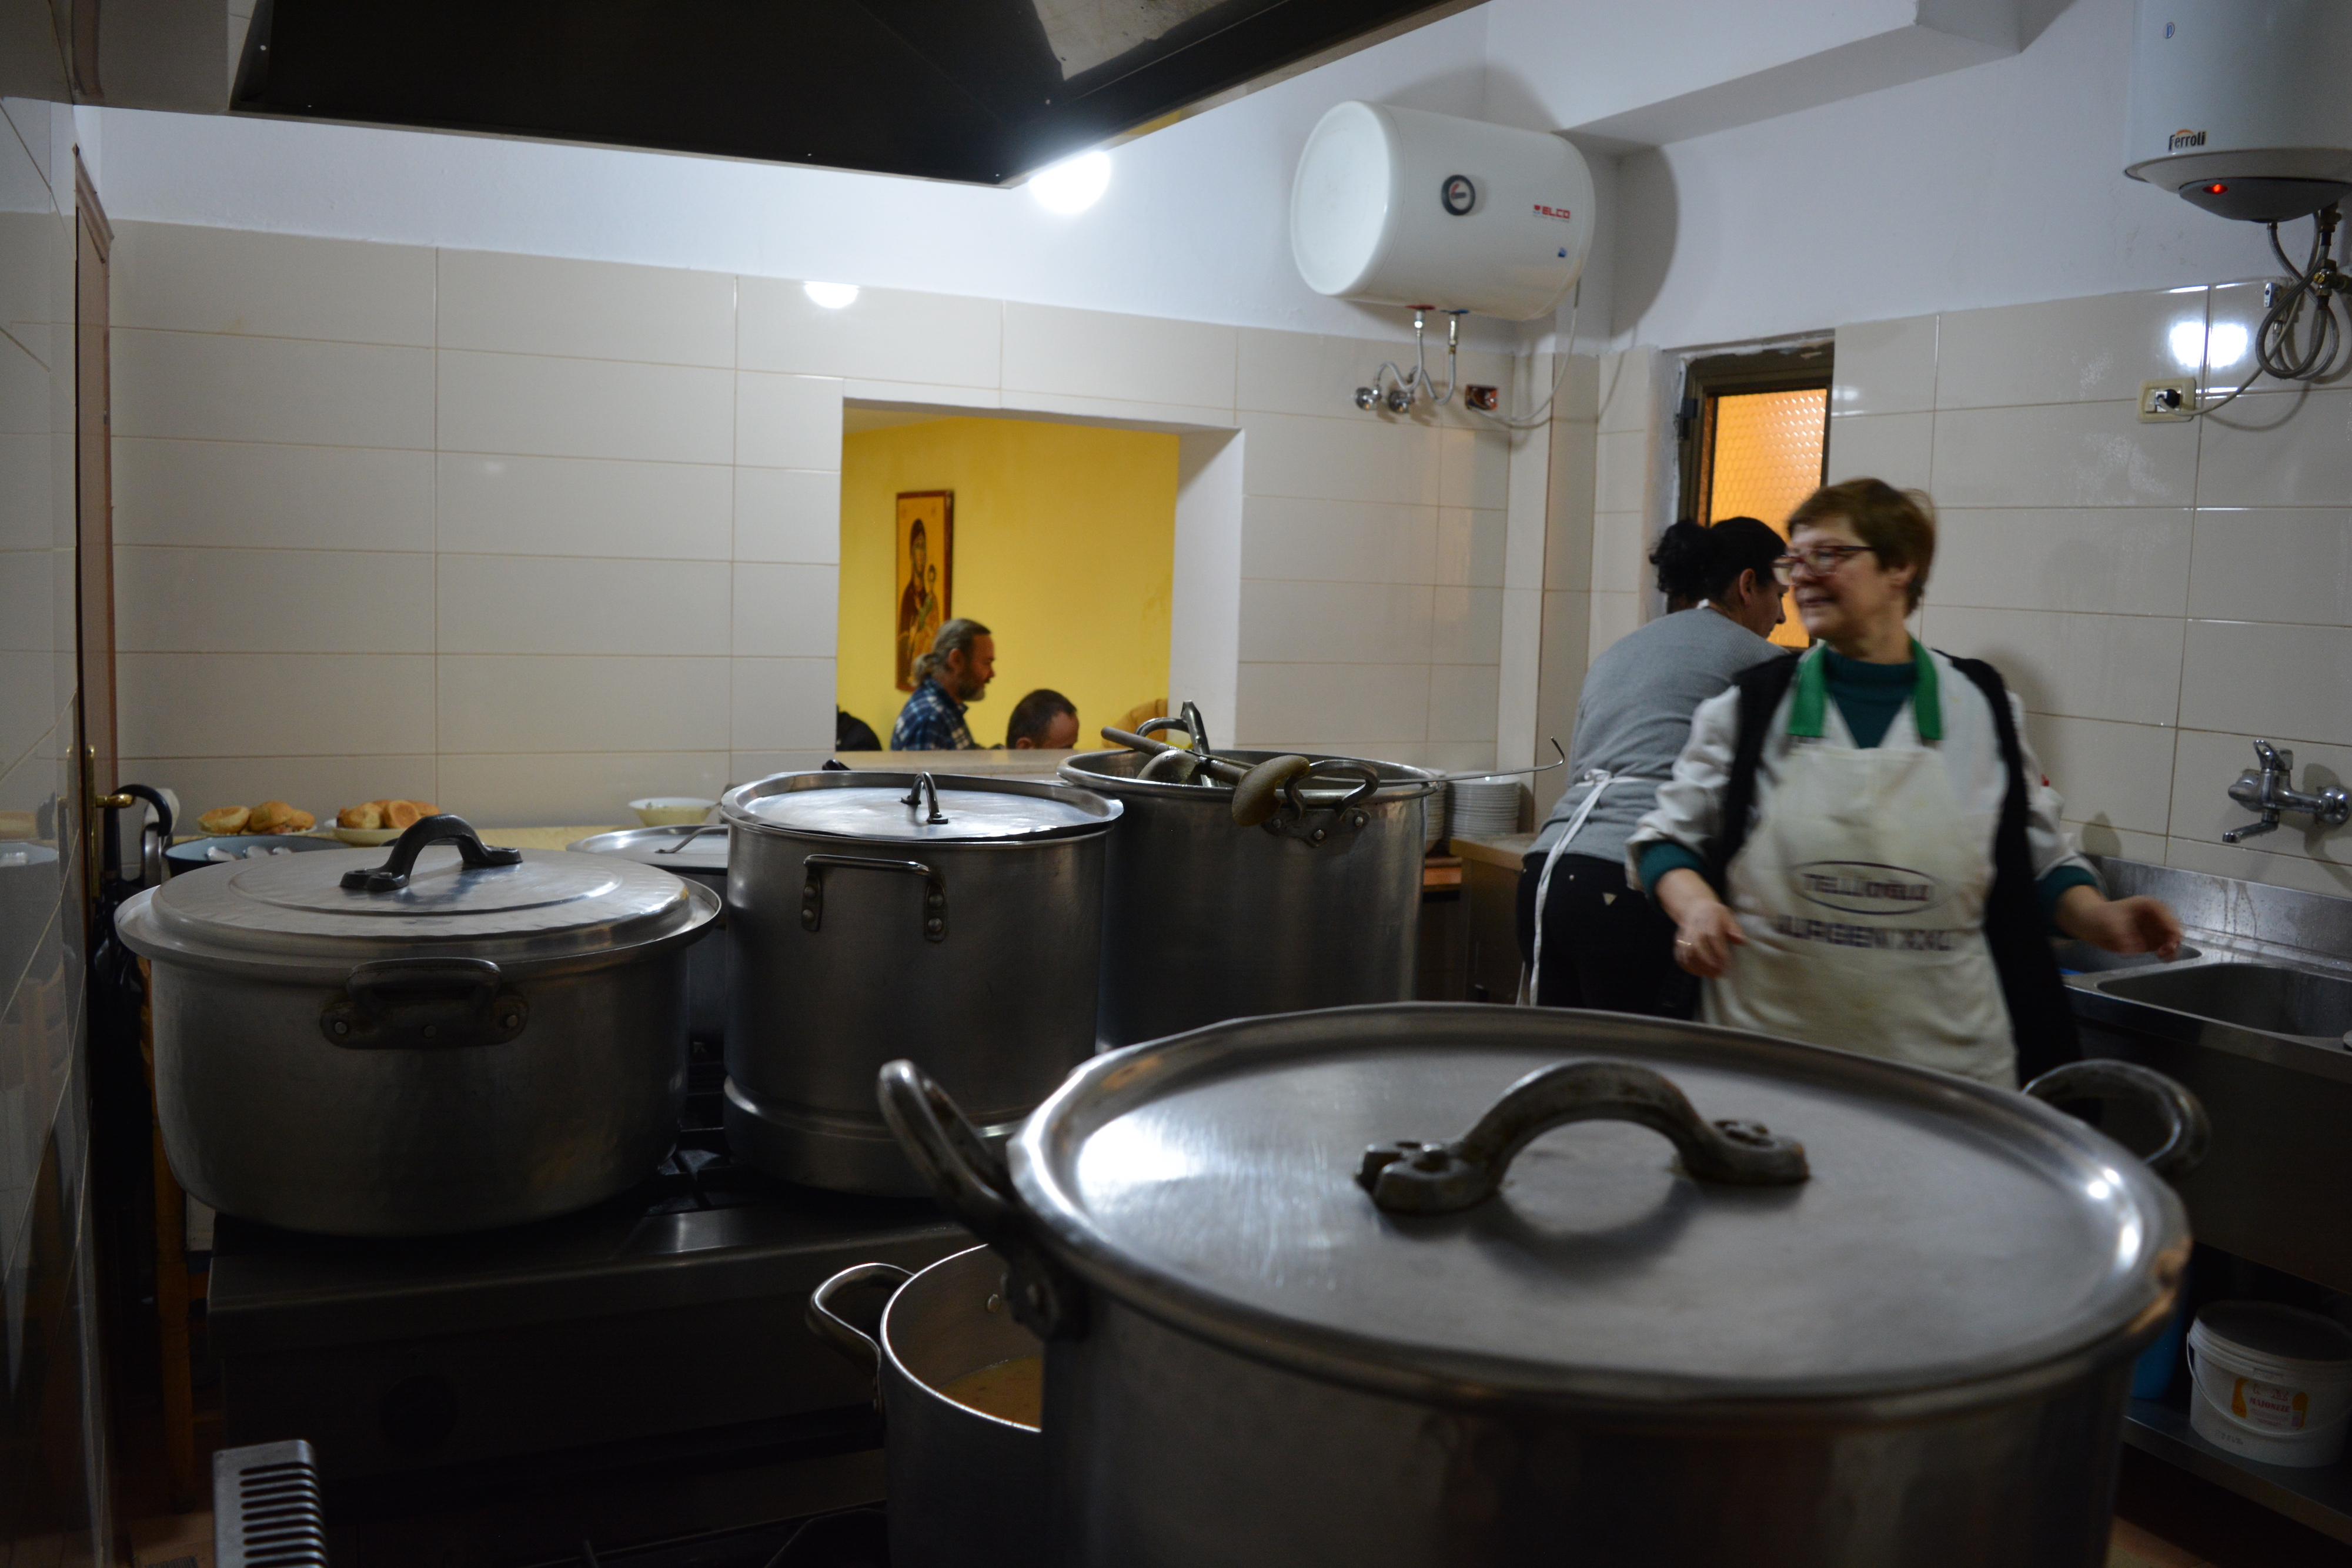 Soup Kitchen for poor and homeless people